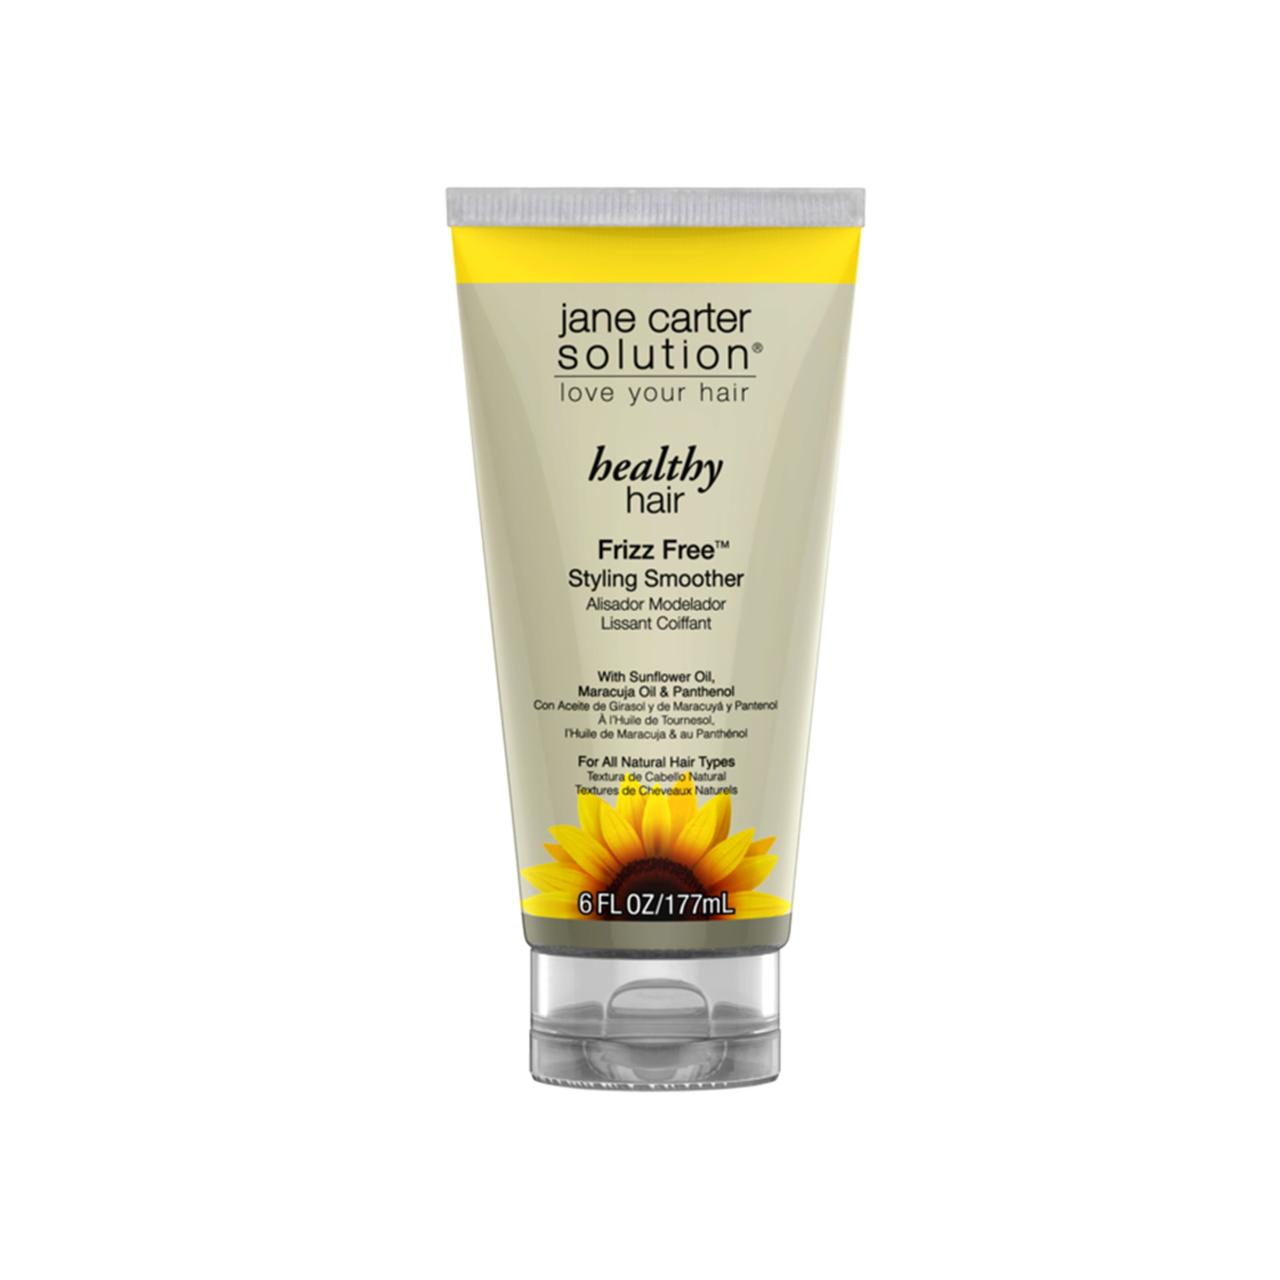 Jane-Carter-Solution-Frizz-Free-Styling-Smoother-6oz__11574.1586865633